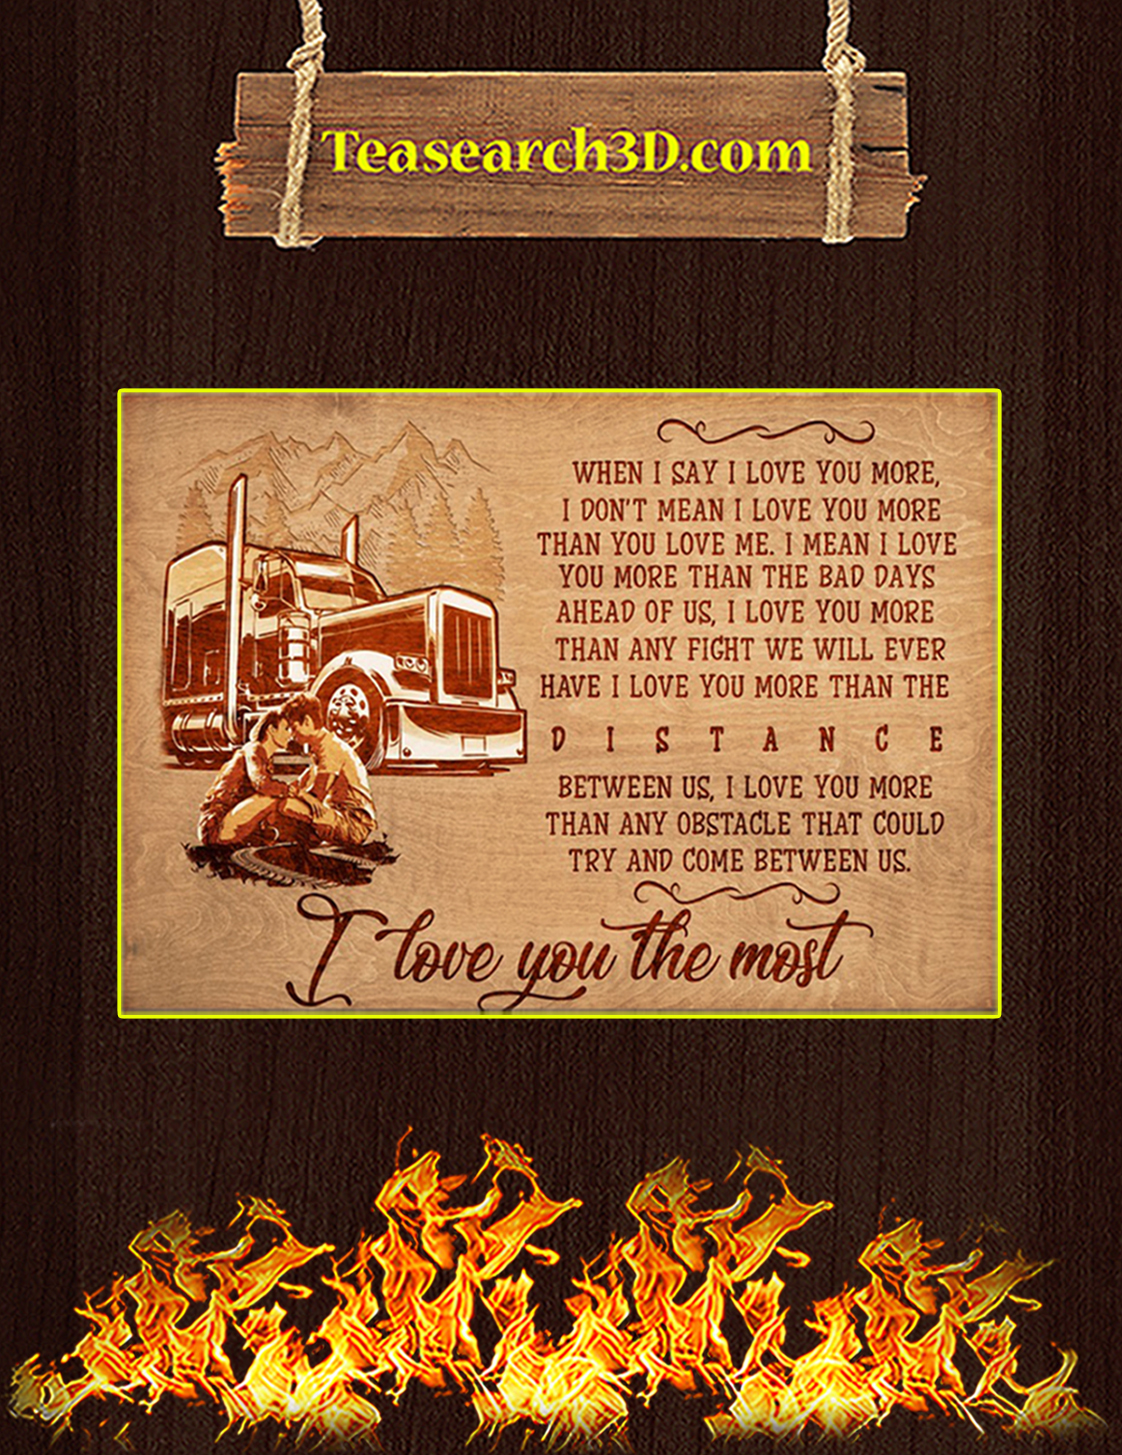 Trucker I love you the most poster A3